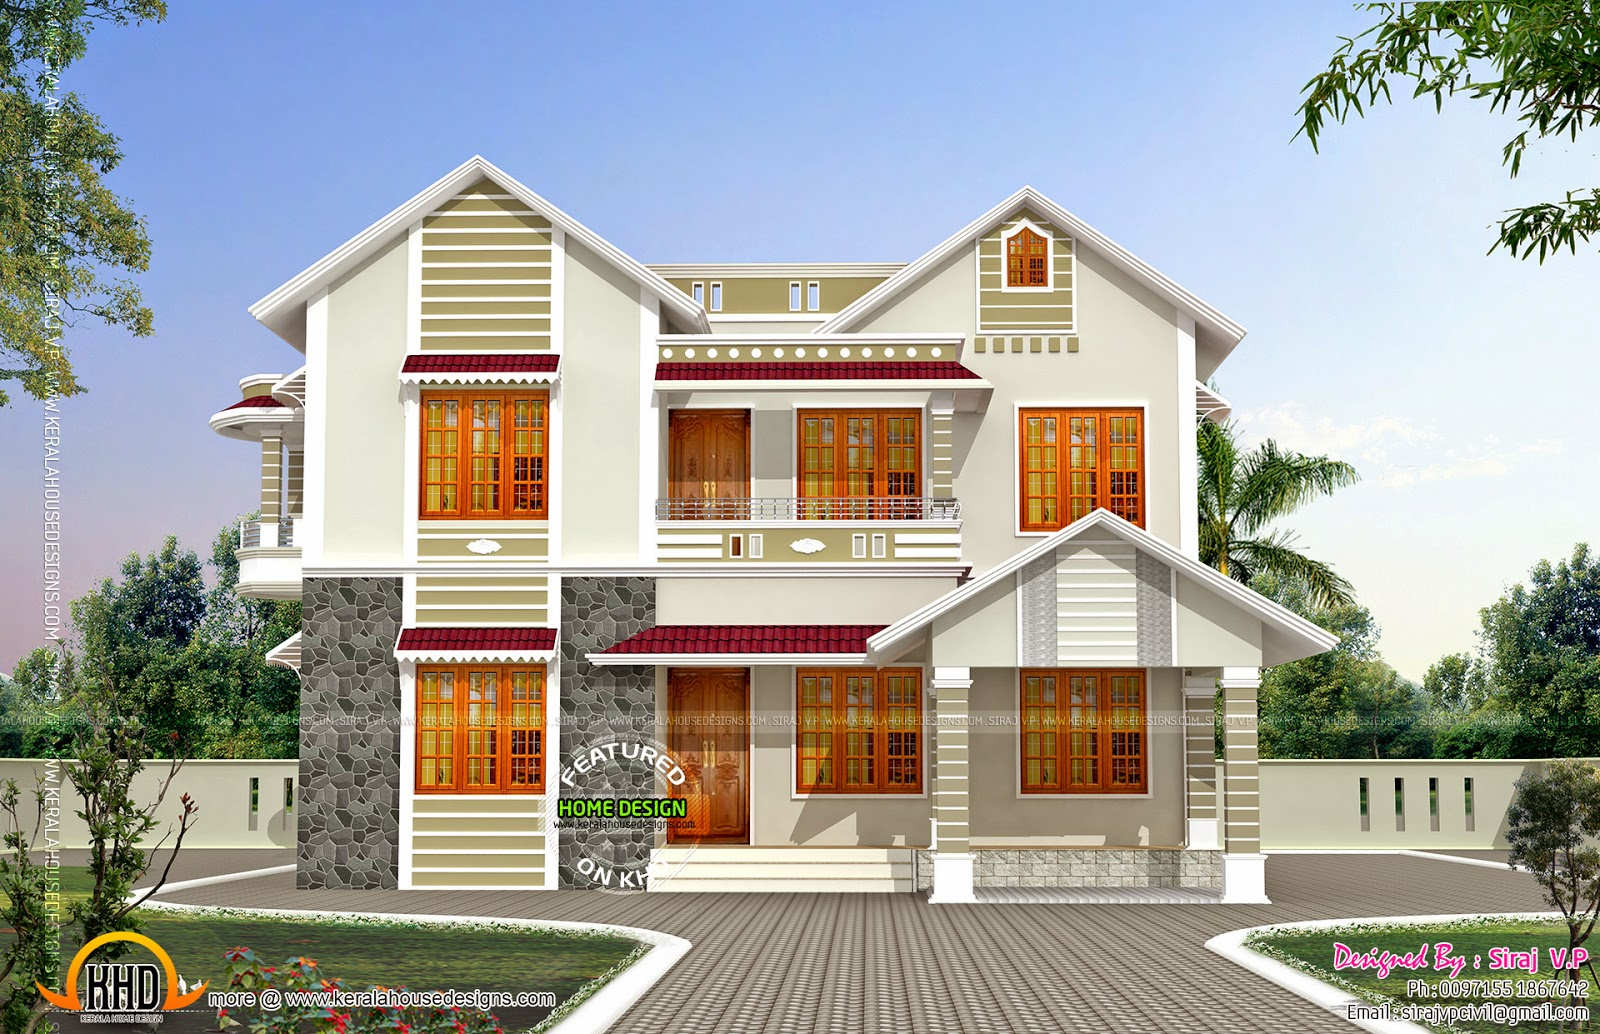 Kerala home design siddu buzz for Design house